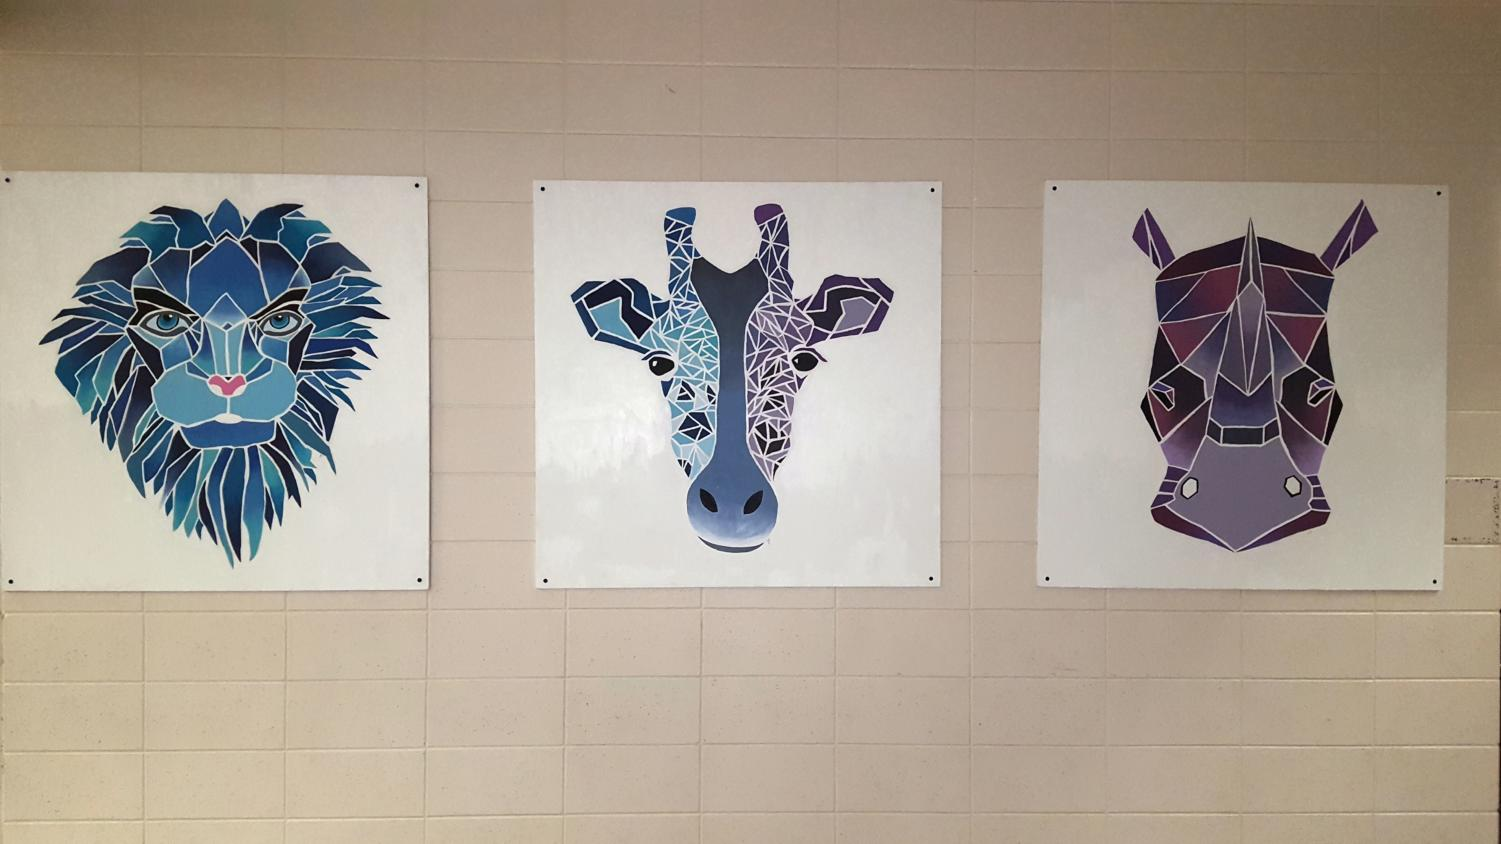 Lion, giraffe and rhino canvases, created by senior Jenna Beyer, greet students outside the cafeteria.